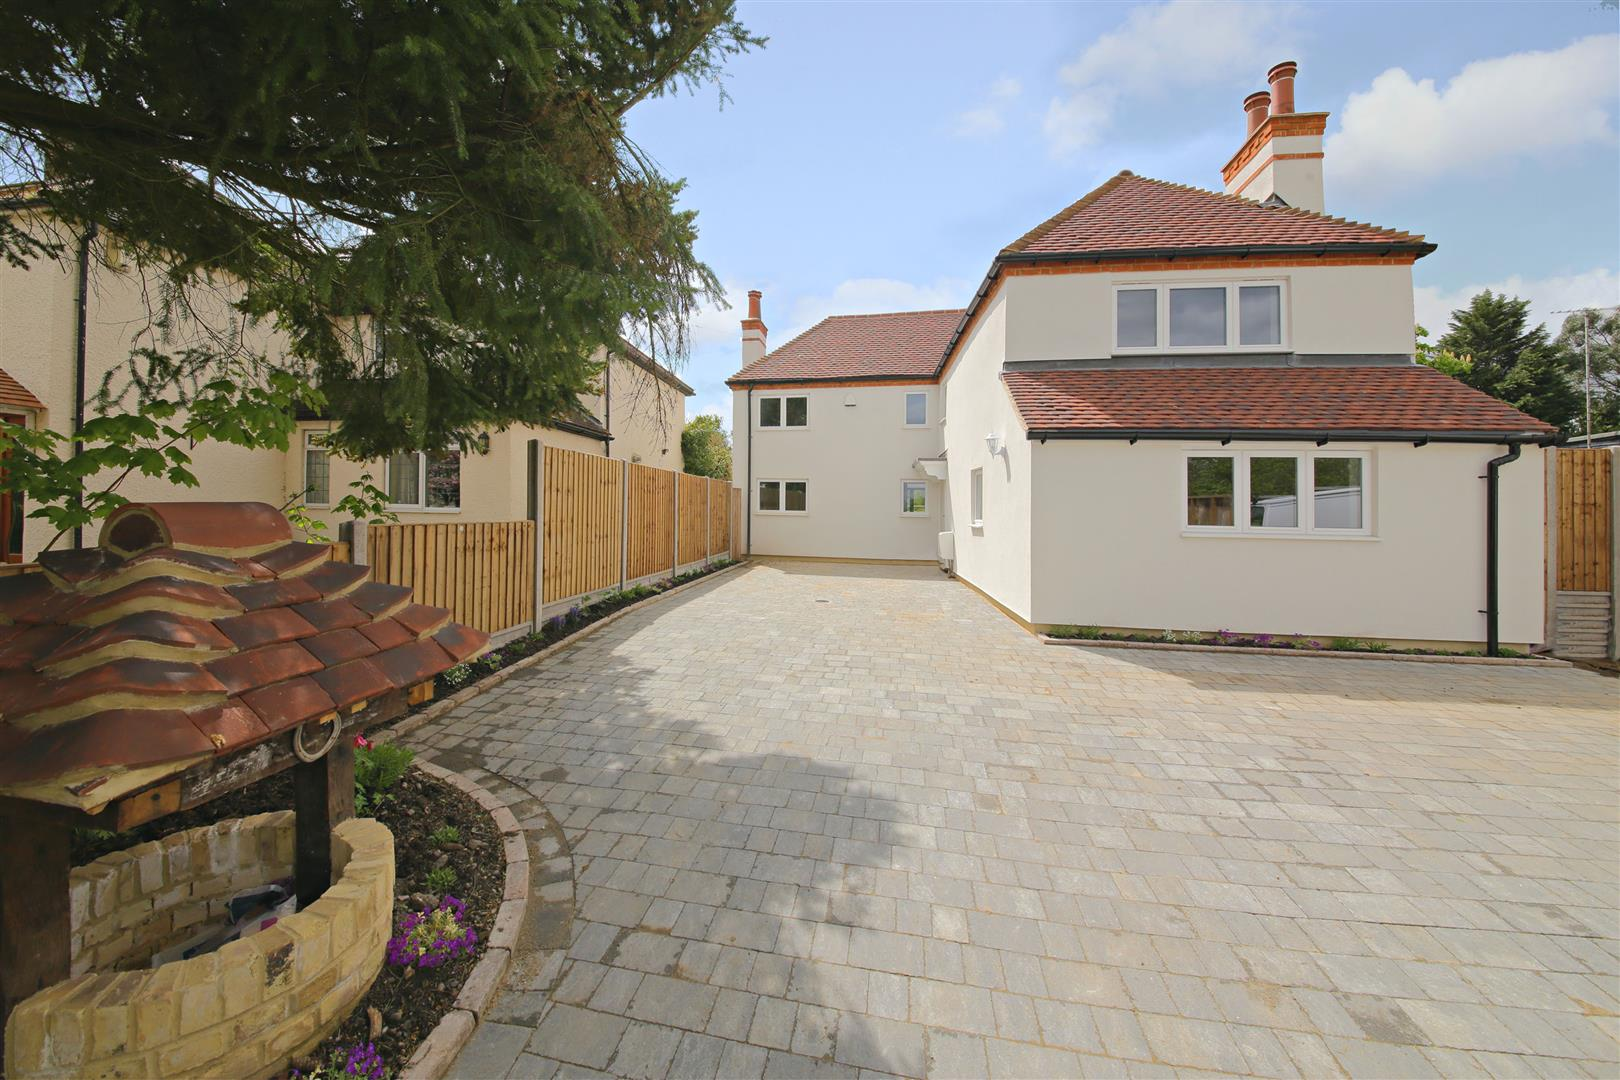 4 bed for sale in London Road, Shenley - (Property Image 3)